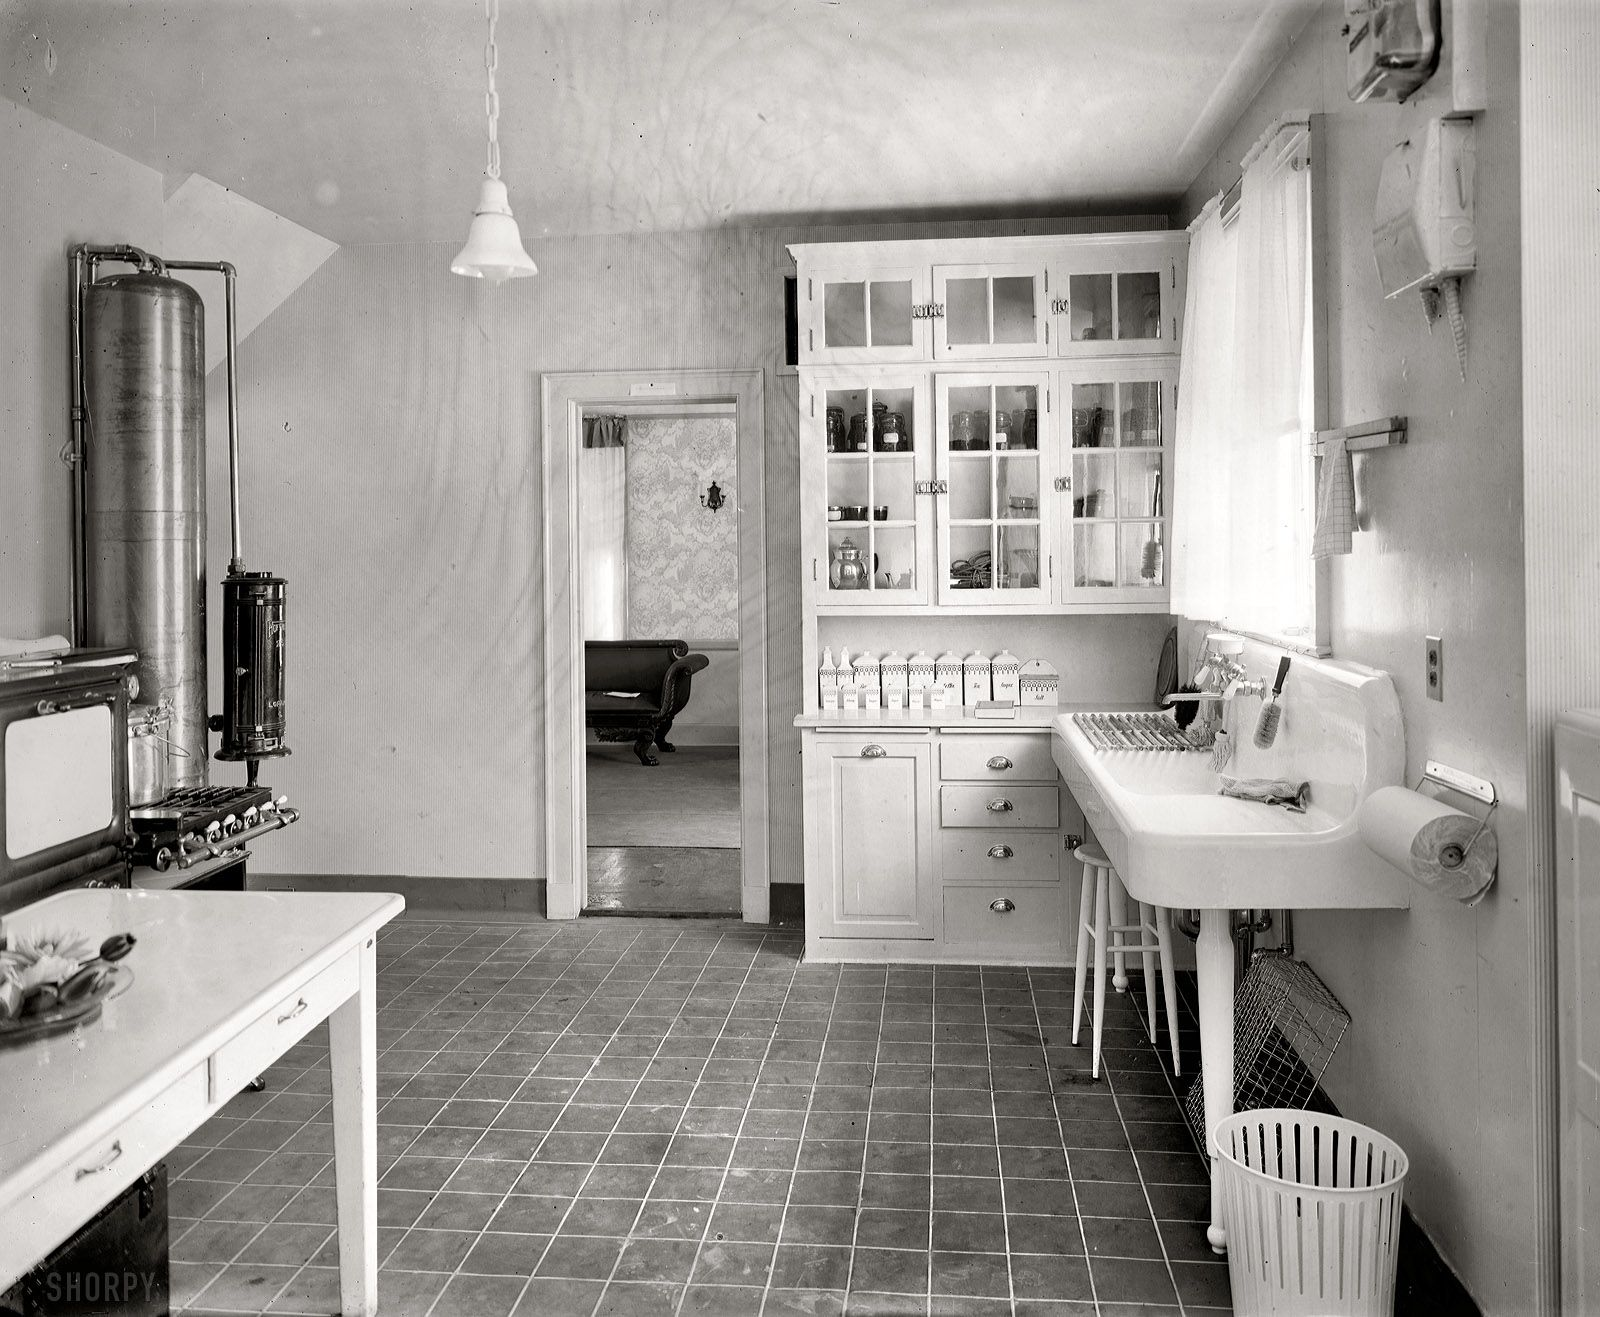 smart ways to outfit the kitchen (1910 | inset cabinets, 1920s